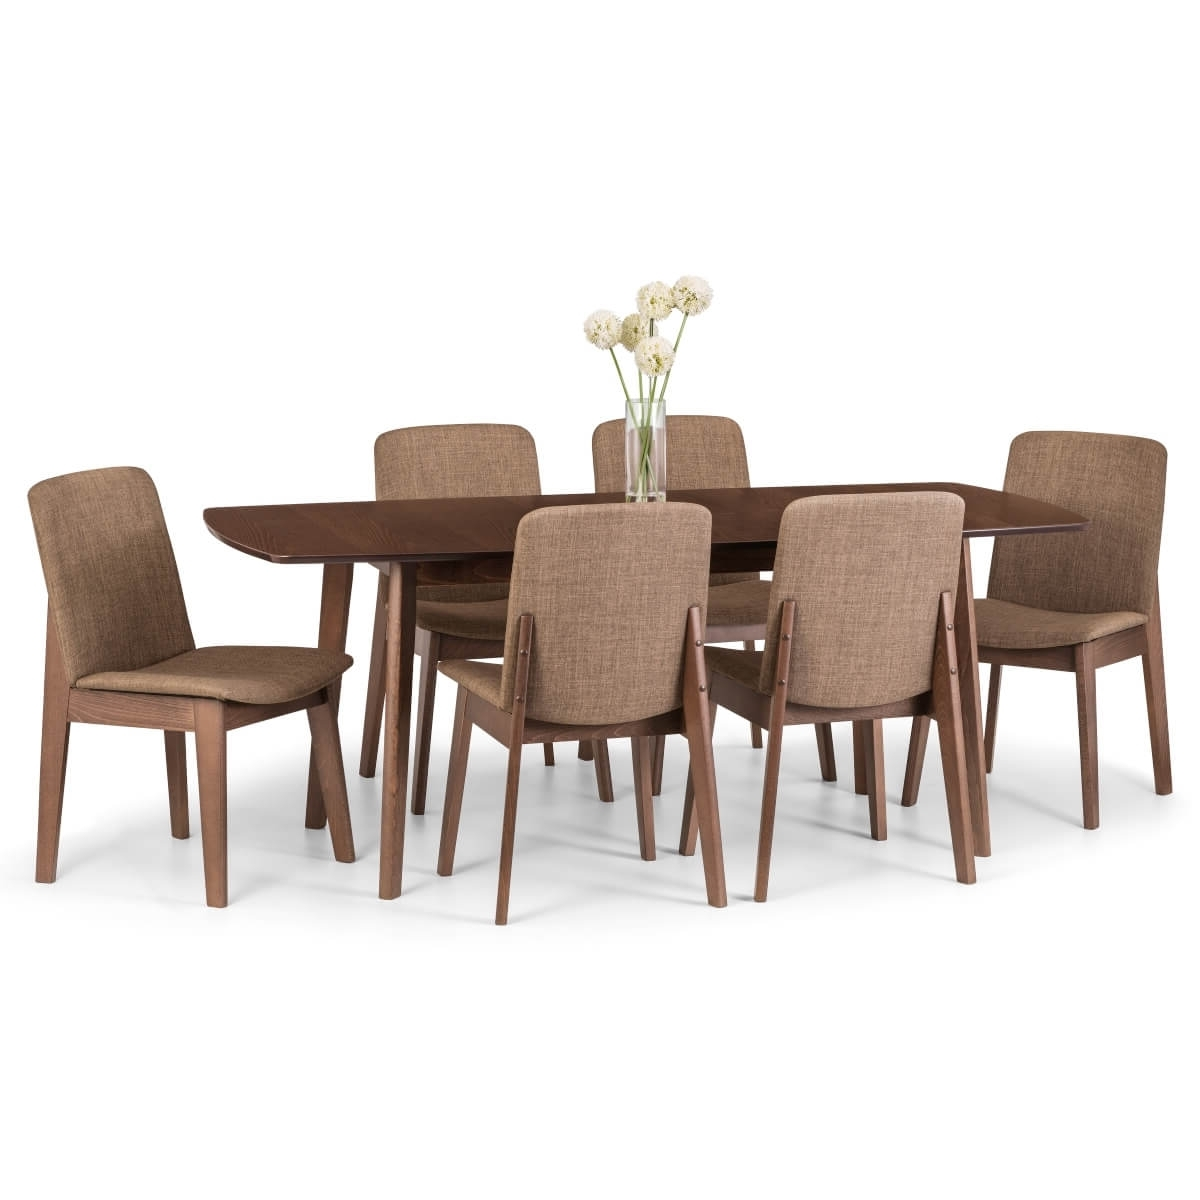 Dining Set – Kensington Dining Table, 6 Chairs In Walnut Ken205 With Regard To Well Liked Walnut Dining Table And 6 Chairs (View 2 of 25)